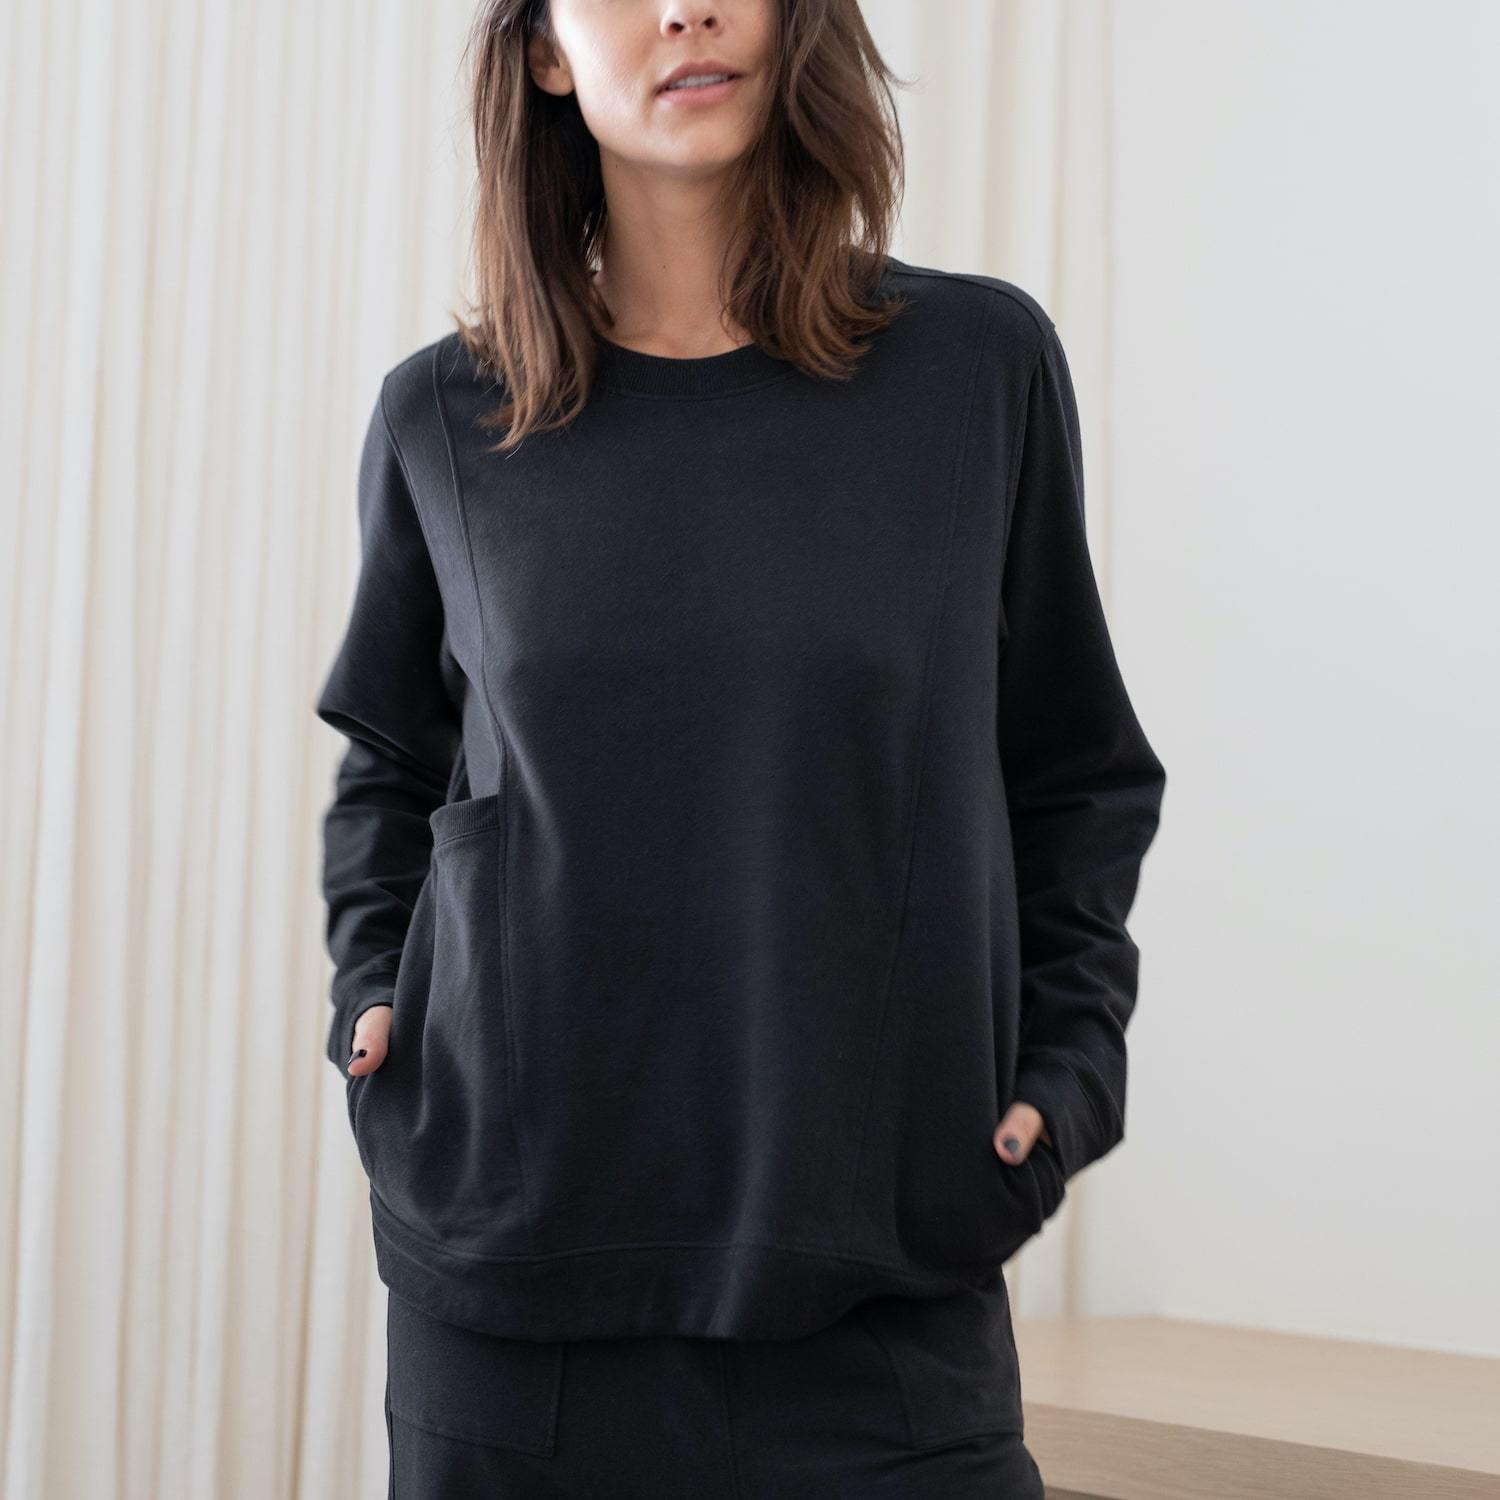 Lunya Sleepwear Cozy Pima Alpaca Fleece Relaxed Sweatshirt - #Black